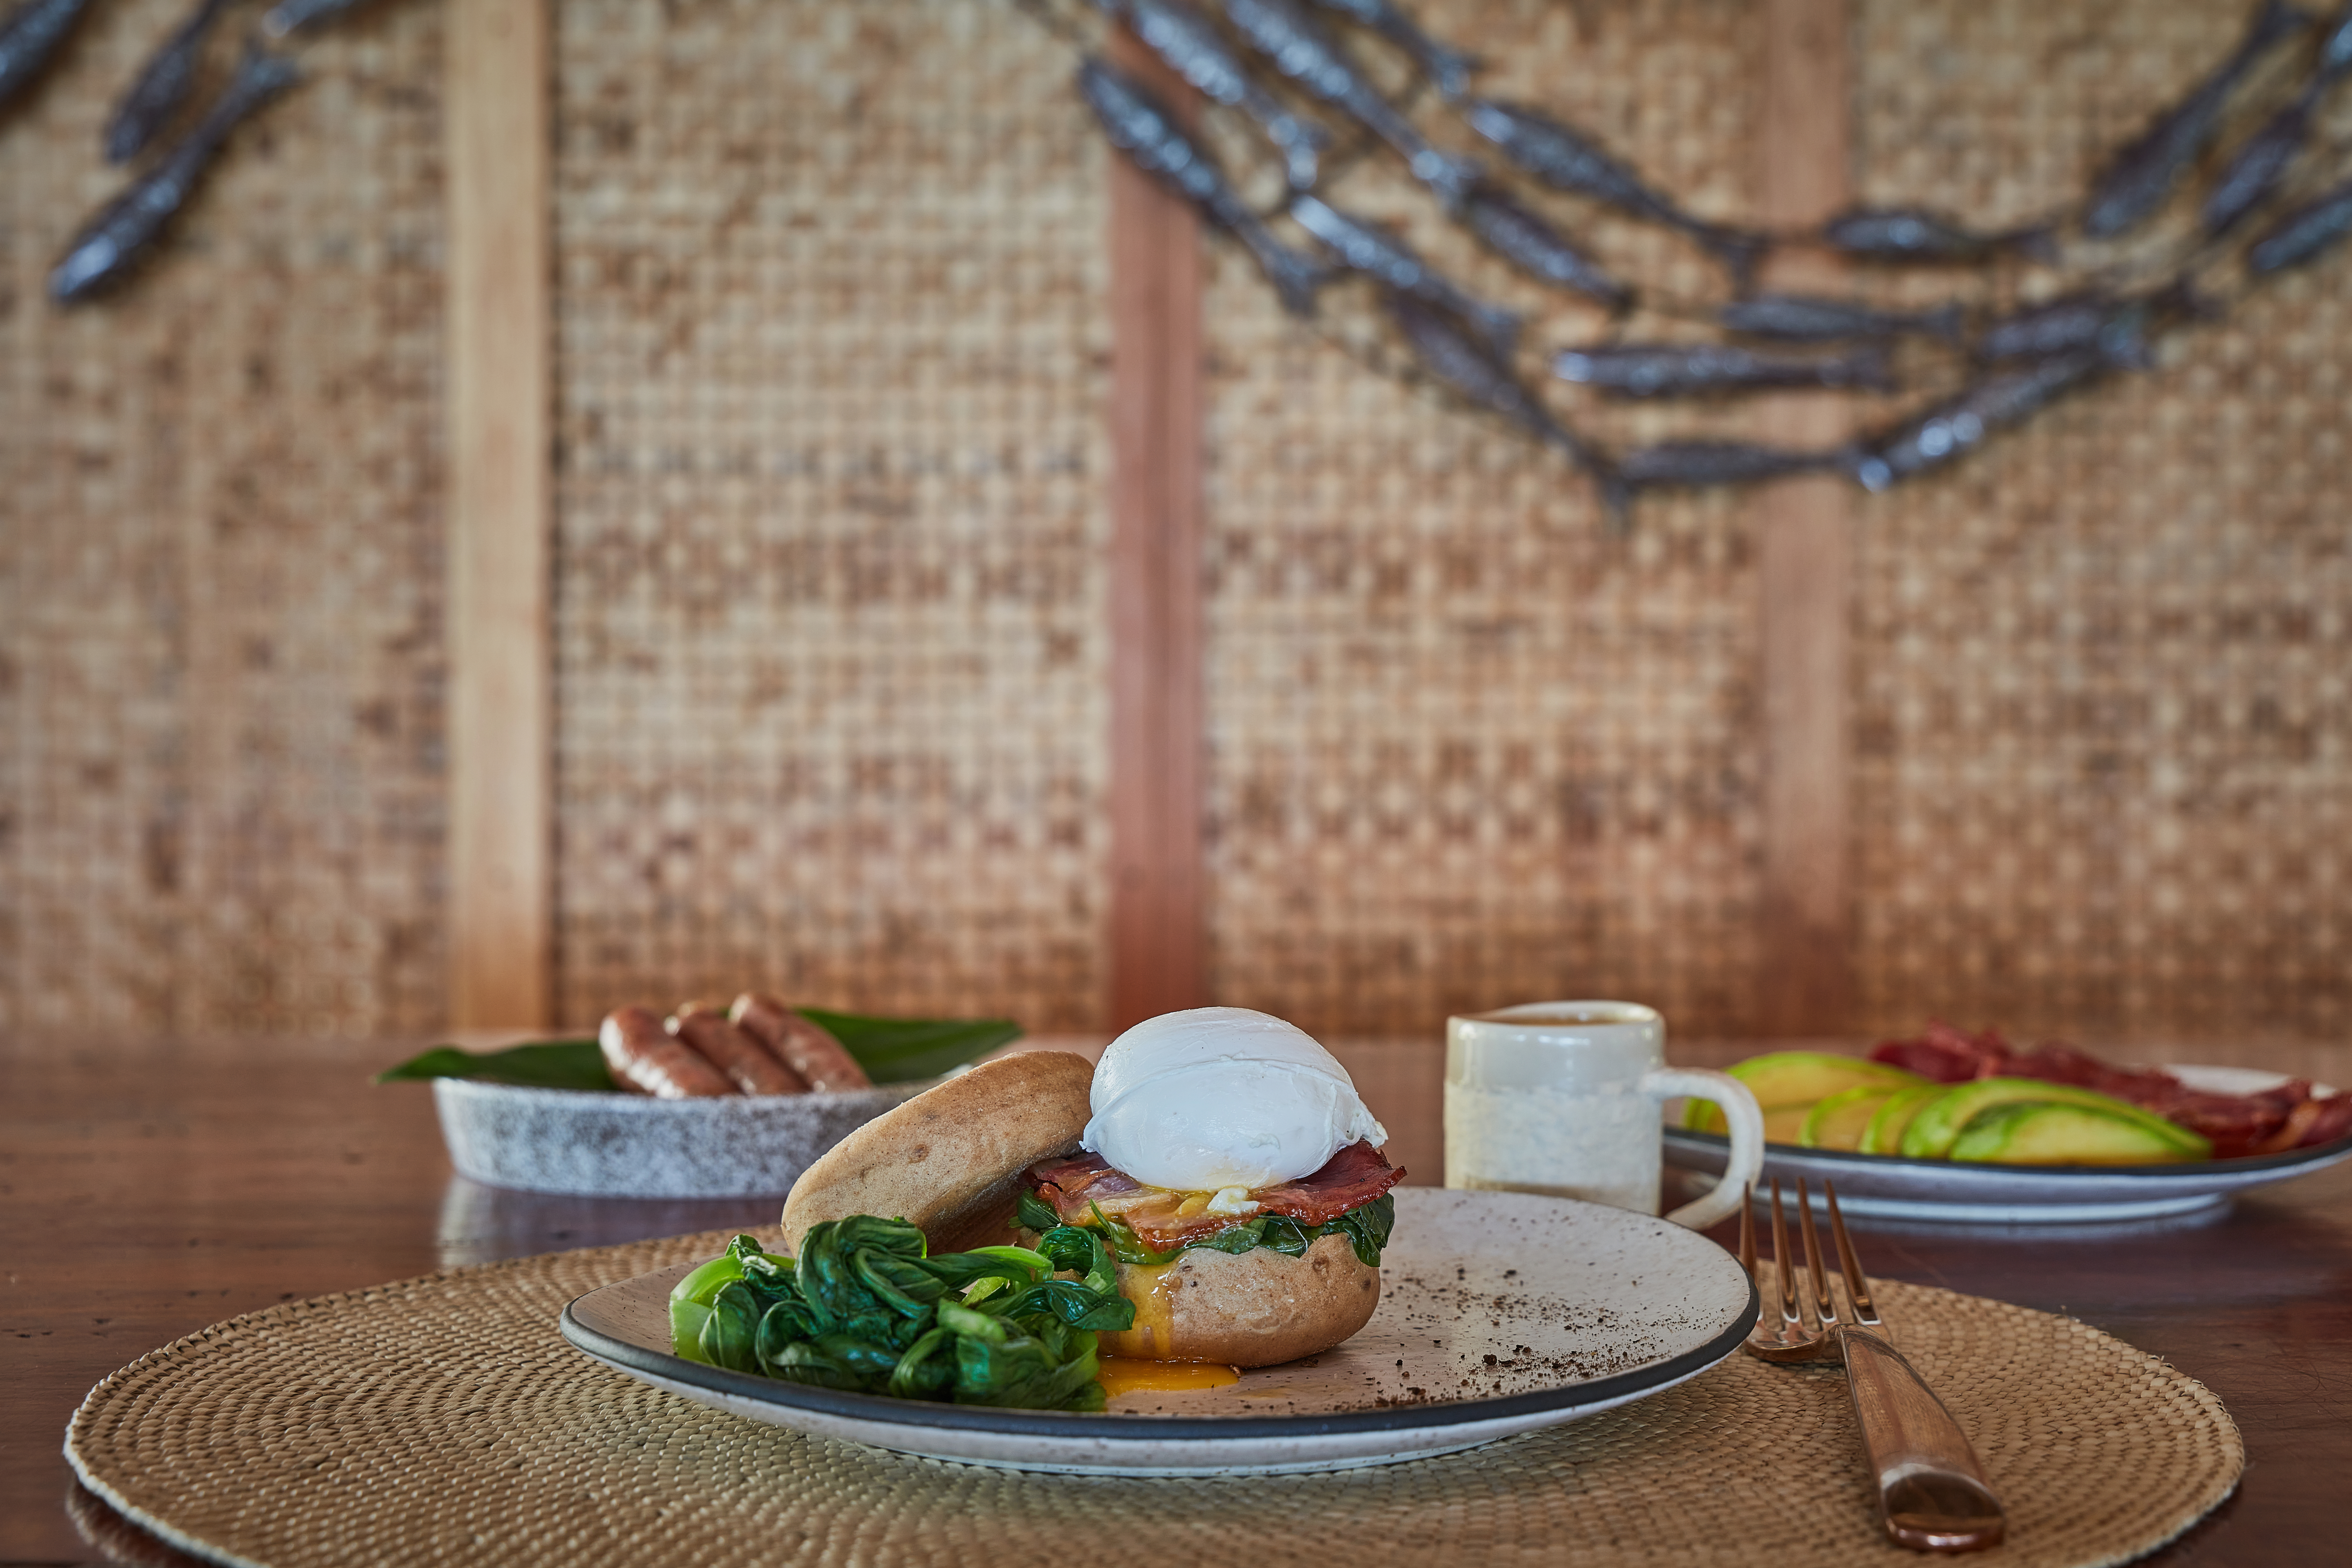 eggs_benedict_bacon_and_sausages_served_on_table